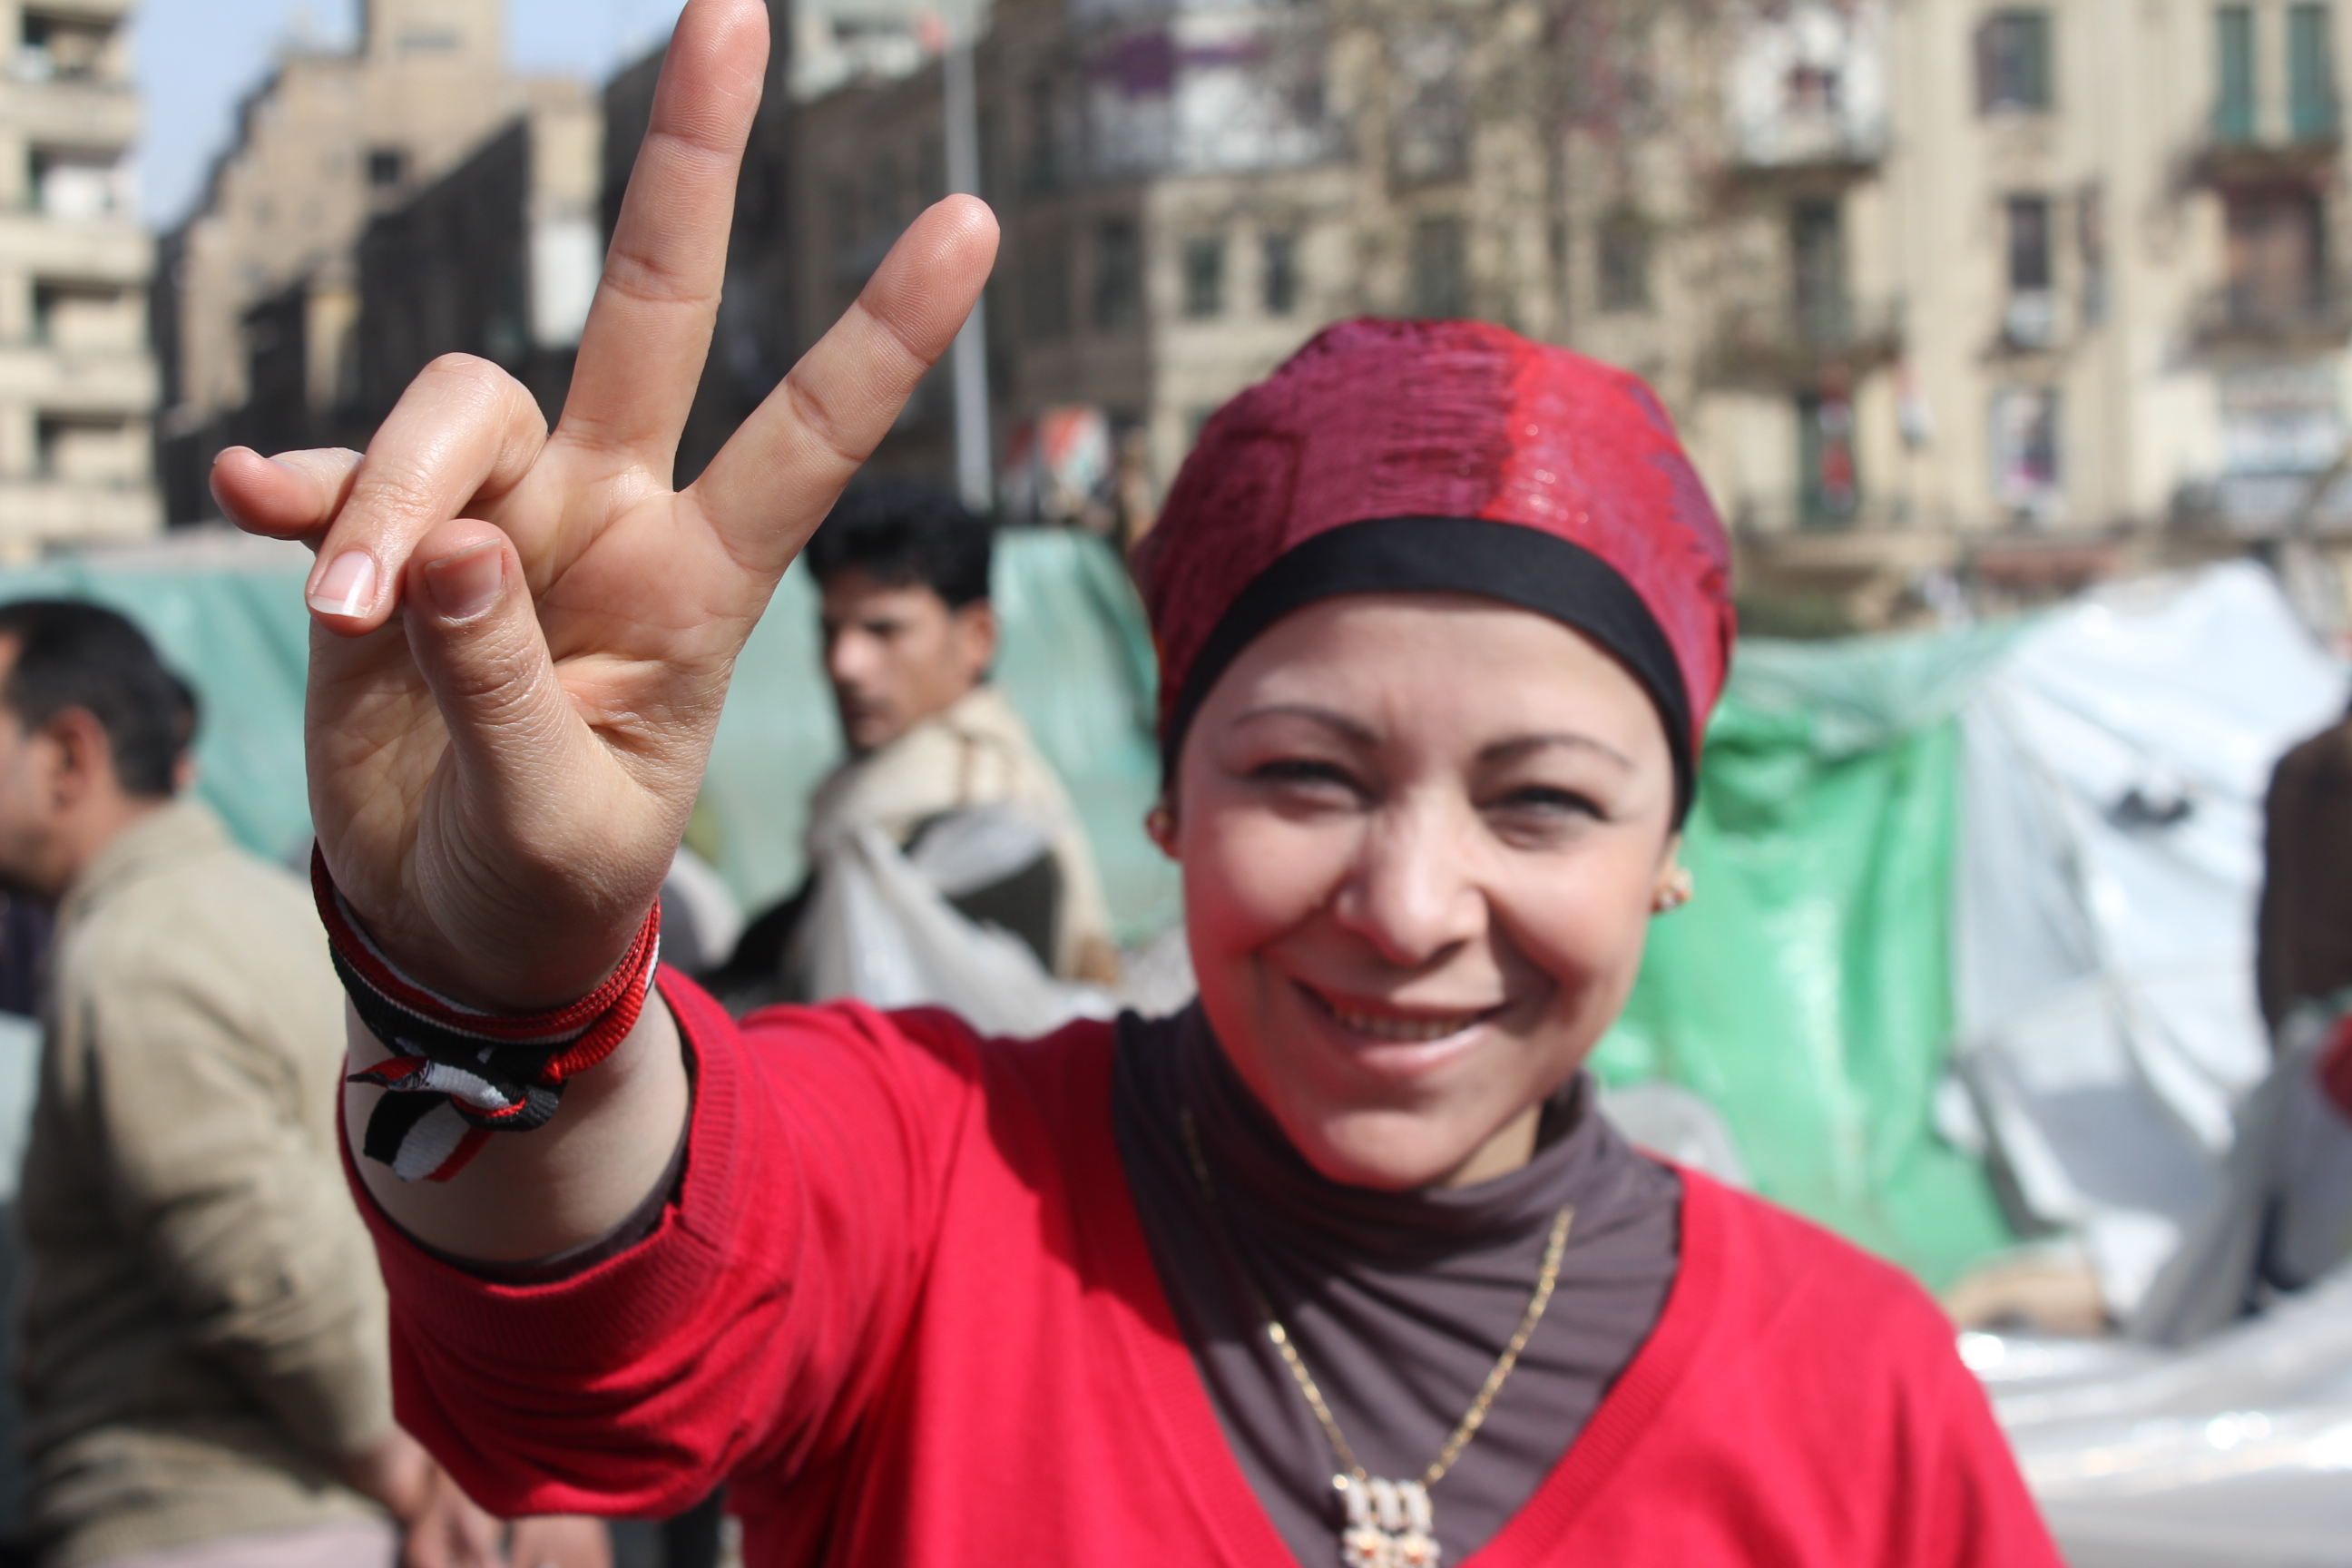 Woman from egypt on International Women's Day